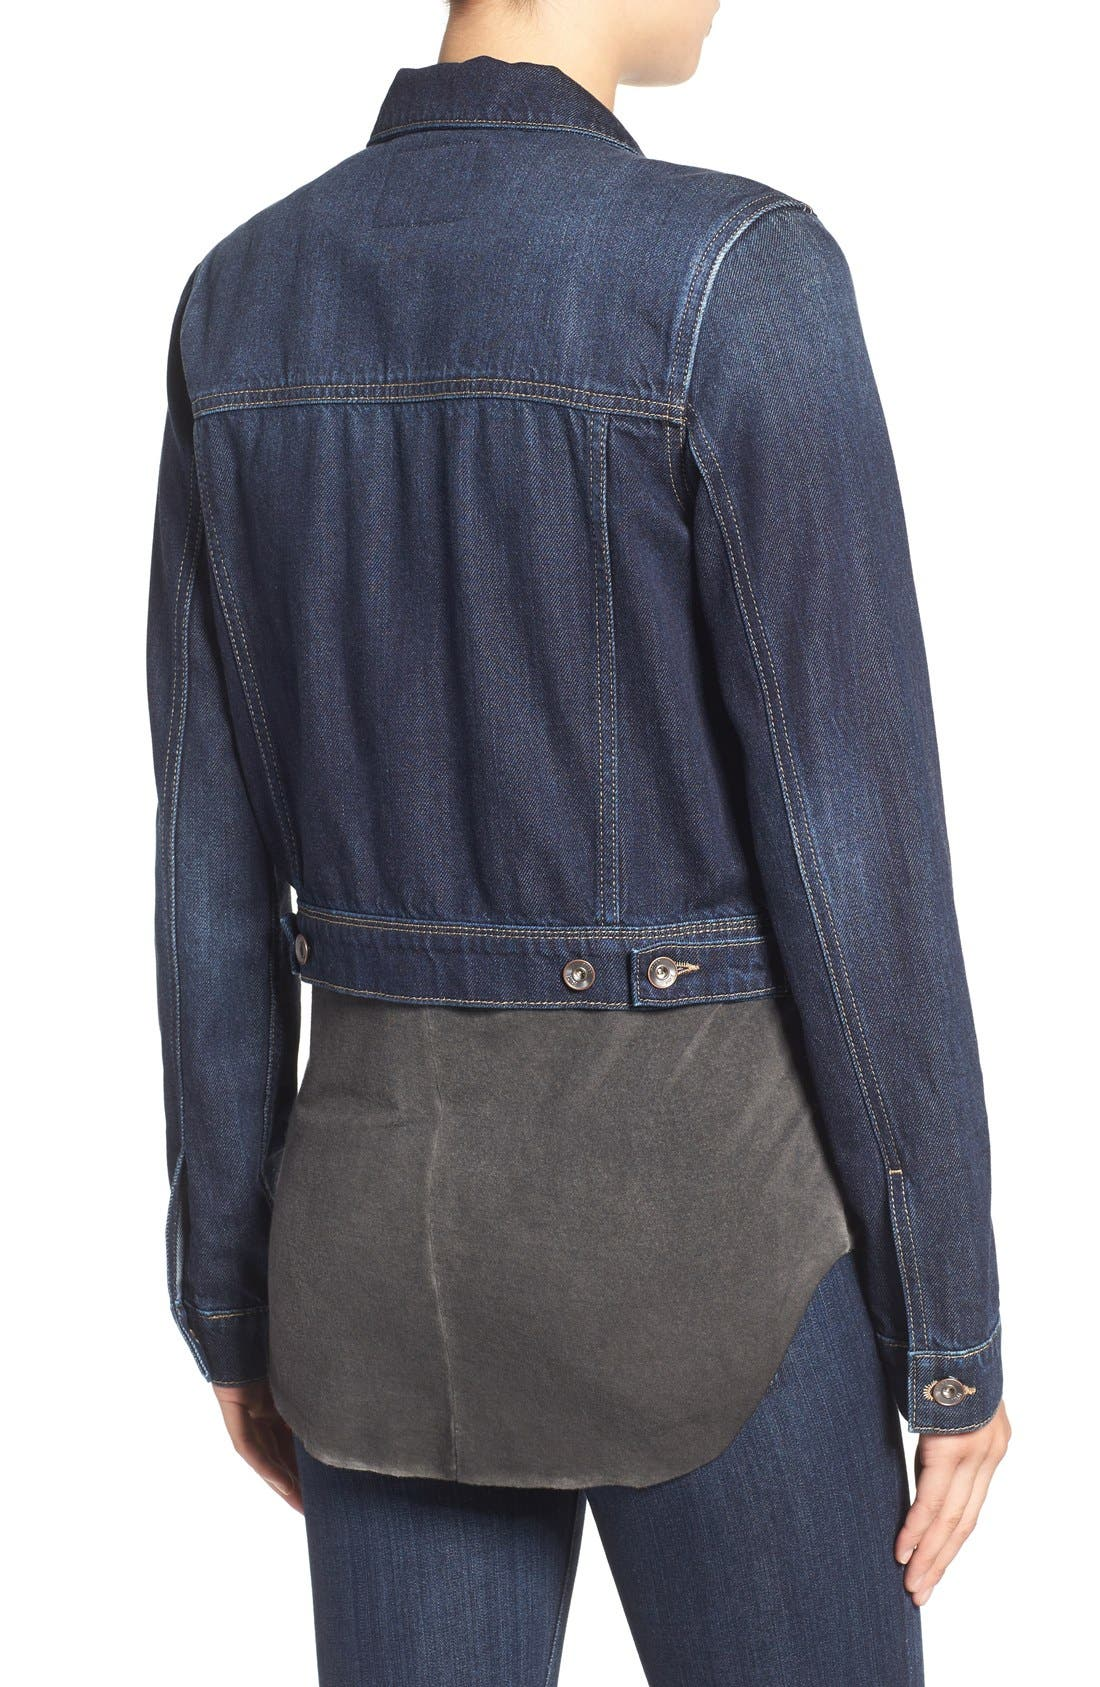 'Vivienne' Denim Jacket,                             Alternate thumbnail 2, color,                             400